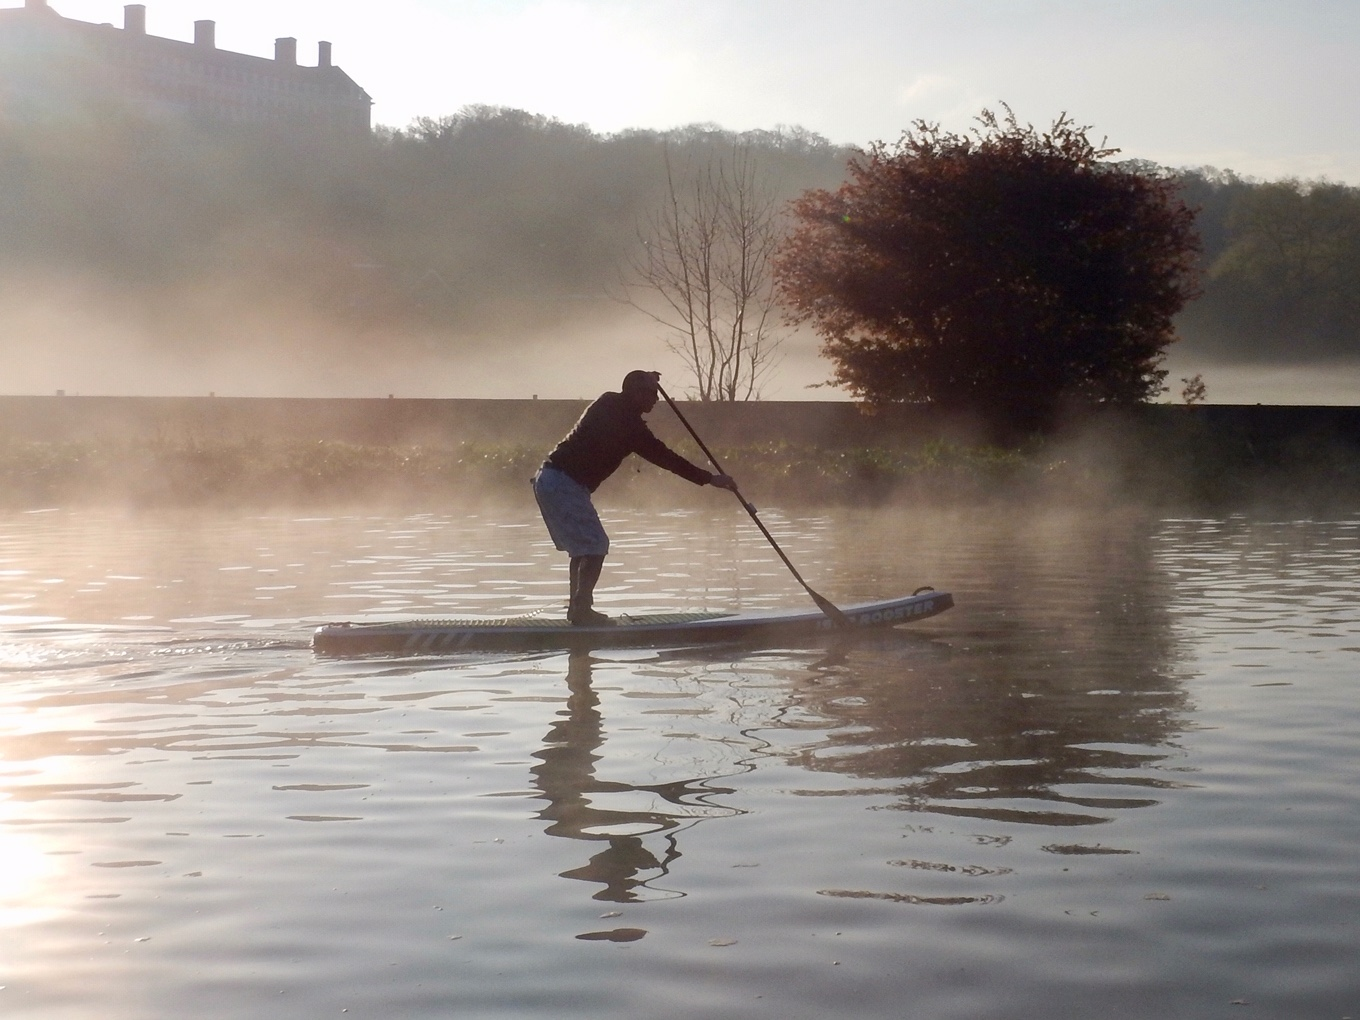 SUP Dawn Patrol Richmond Upon Thames.JPG